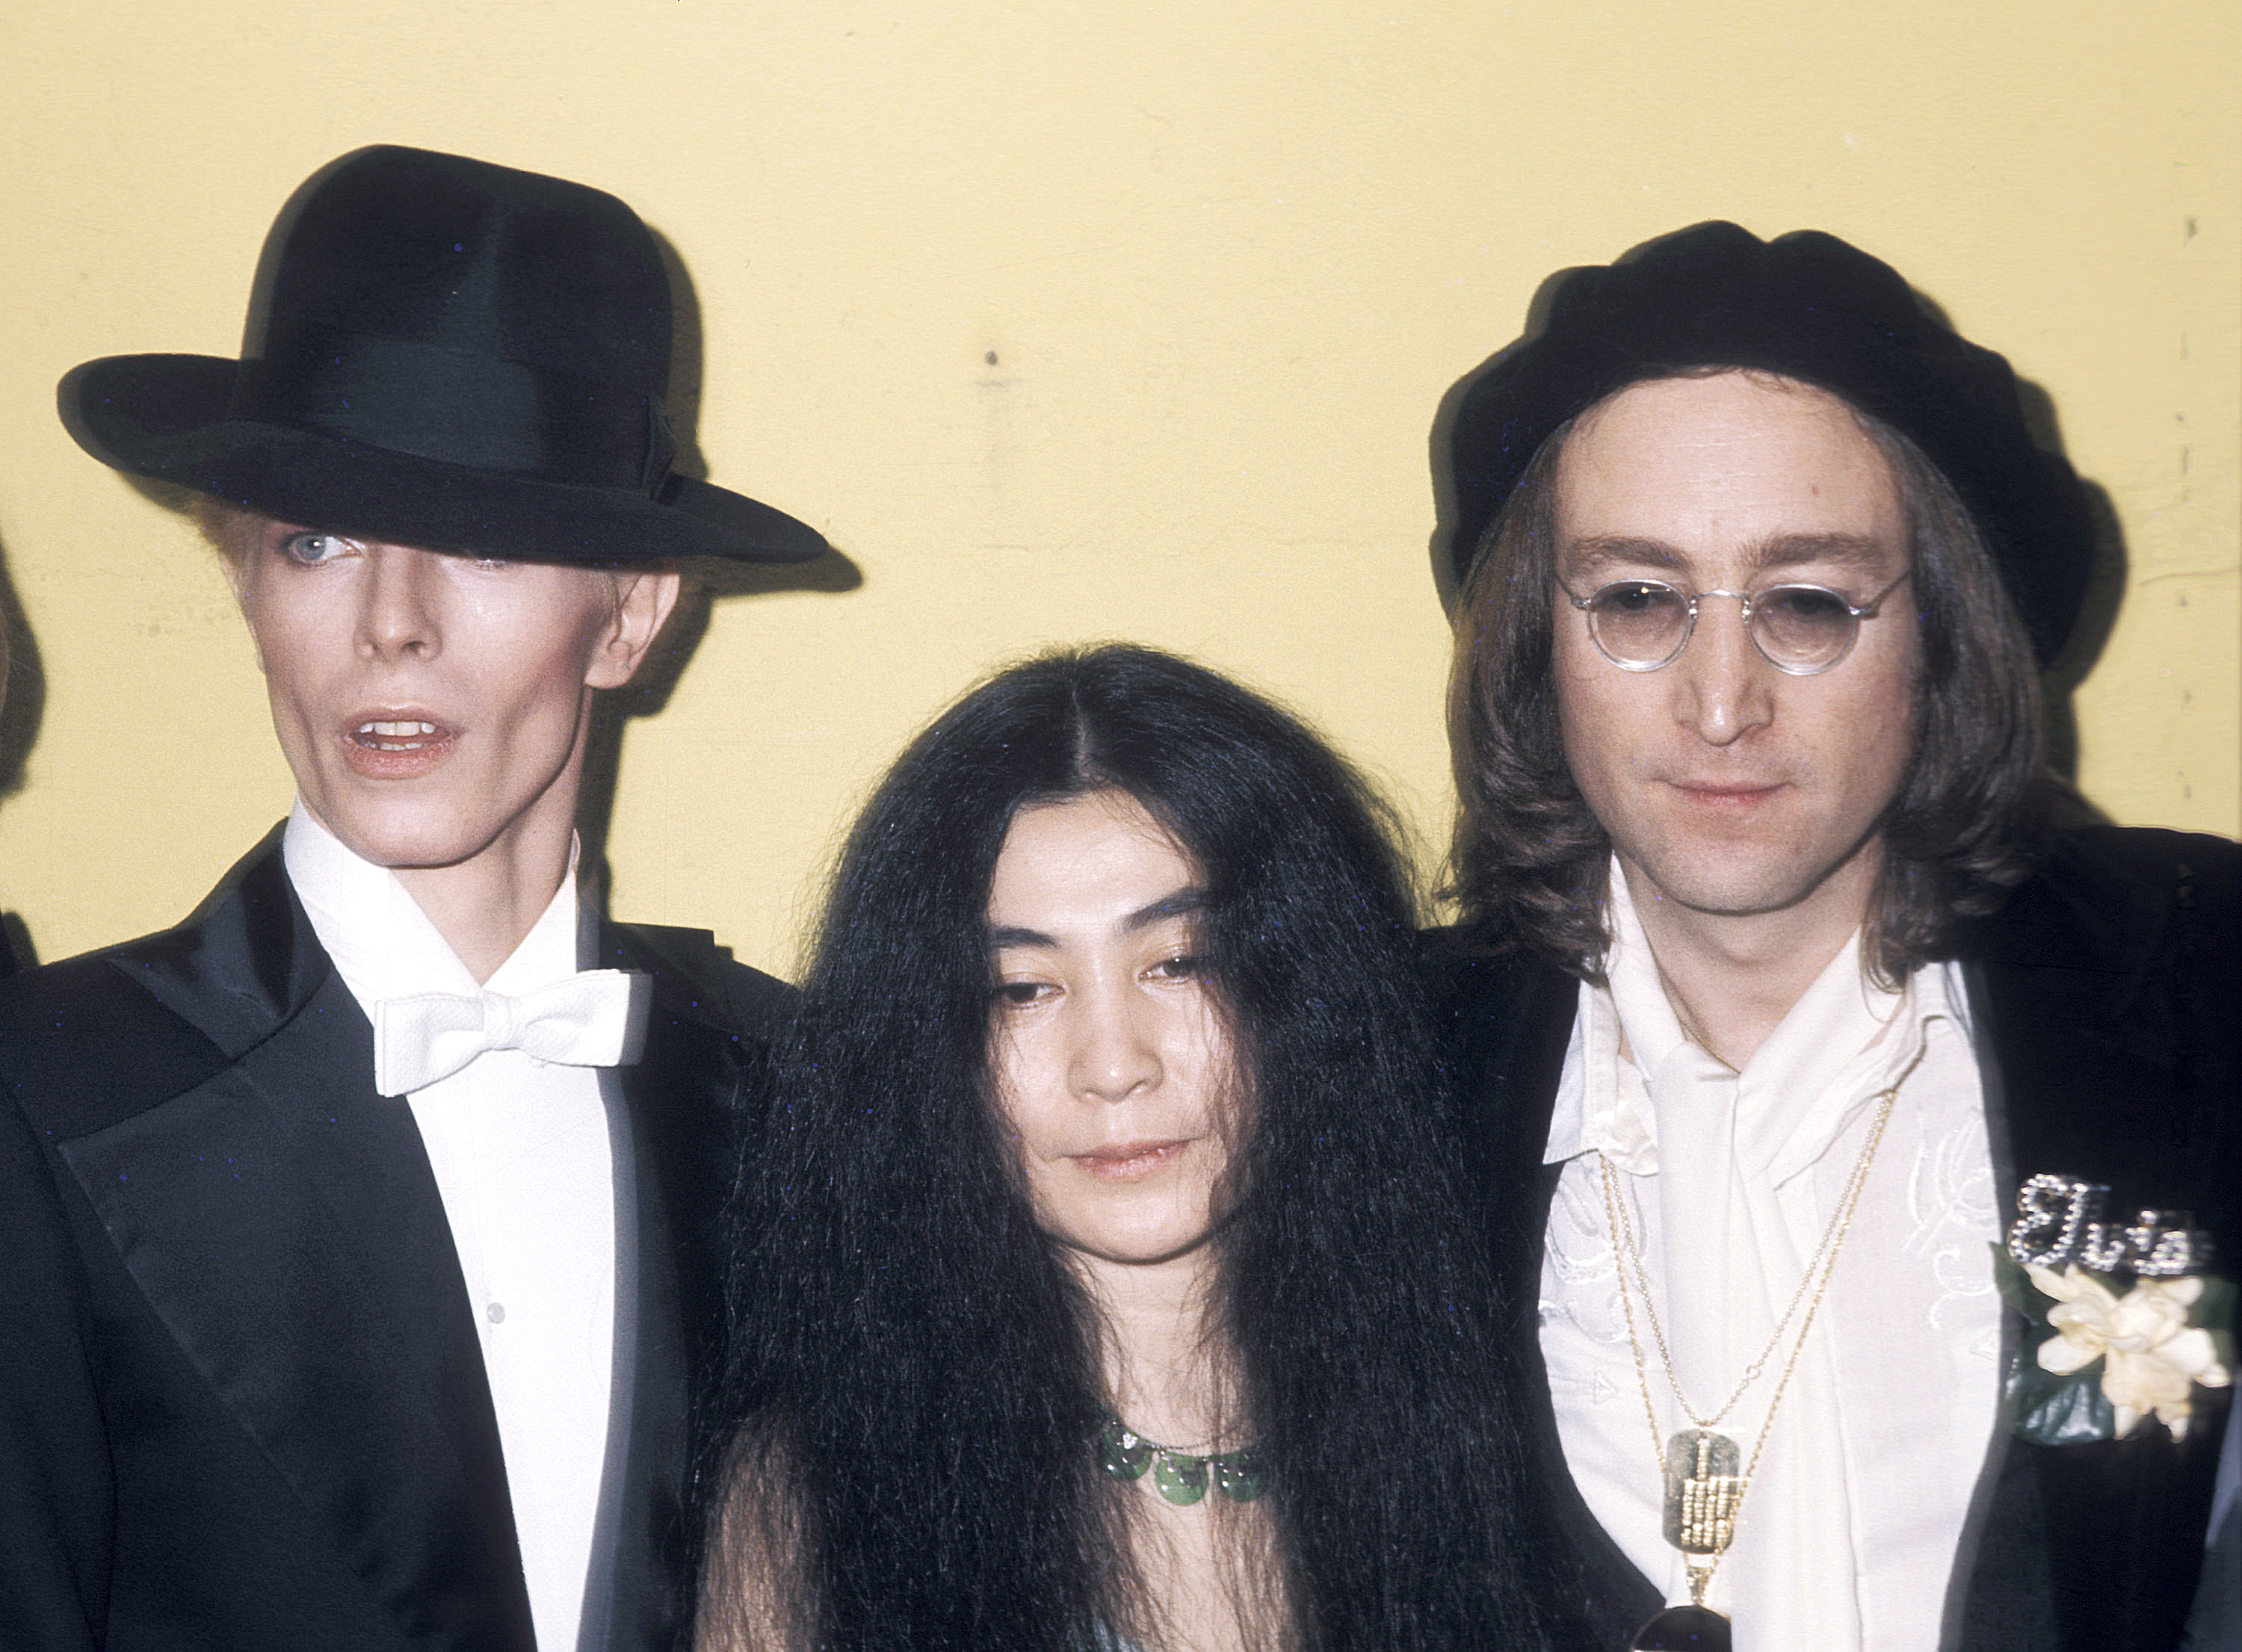 Yoko Ono On Bowie David Was As Close As Family Rolling Stone